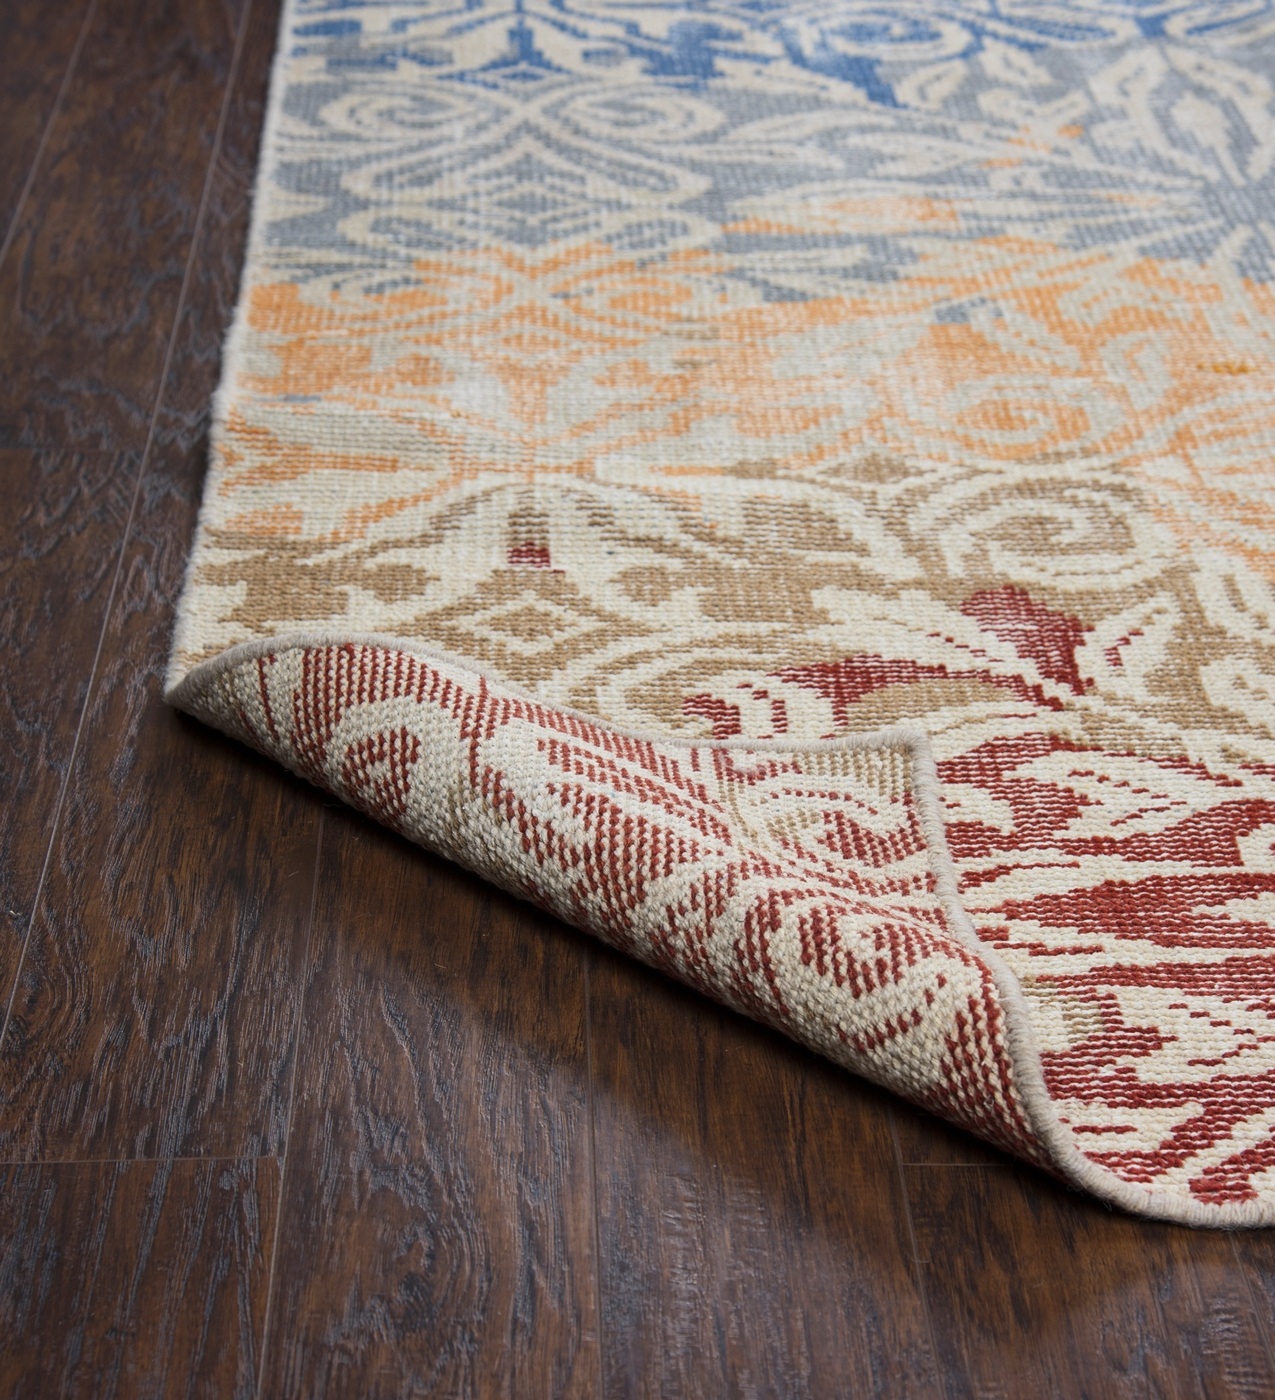 maison faded floral wool area rug in red tan green blue orange 8 39 x 10 39. Black Bedroom Furniture Sets. Home Design Ideas